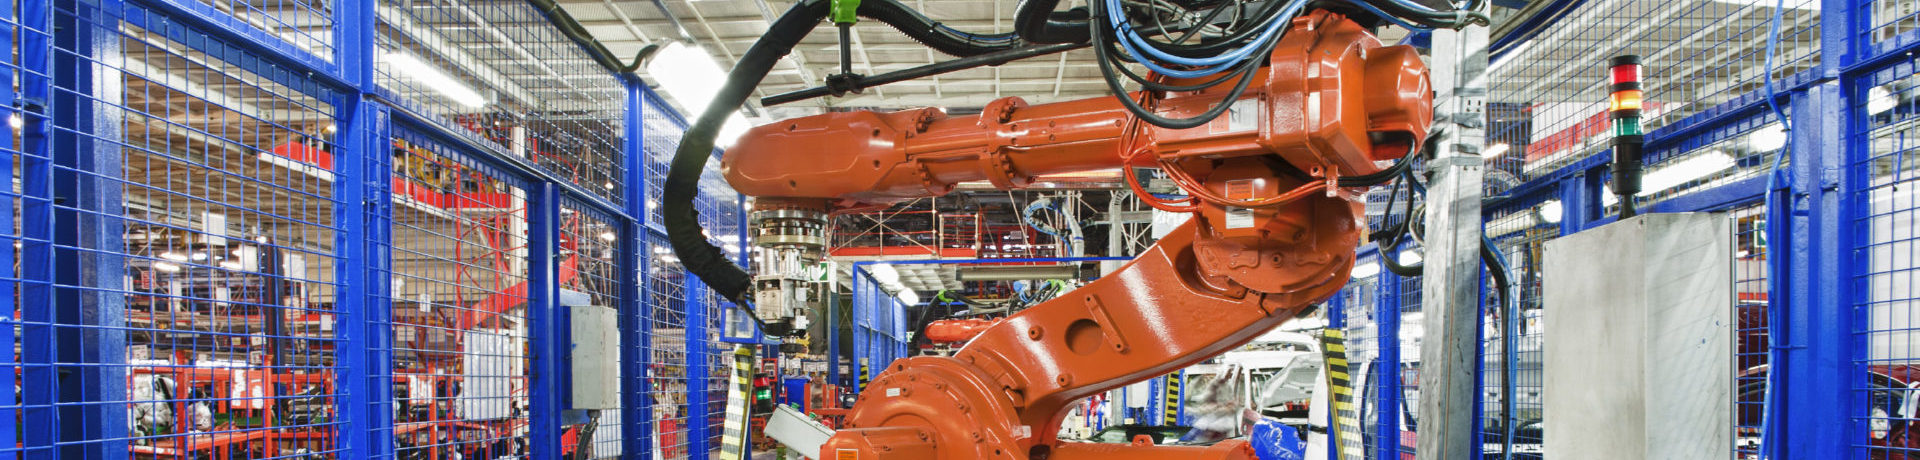 Robotics Industry Executive Search And Recruiters